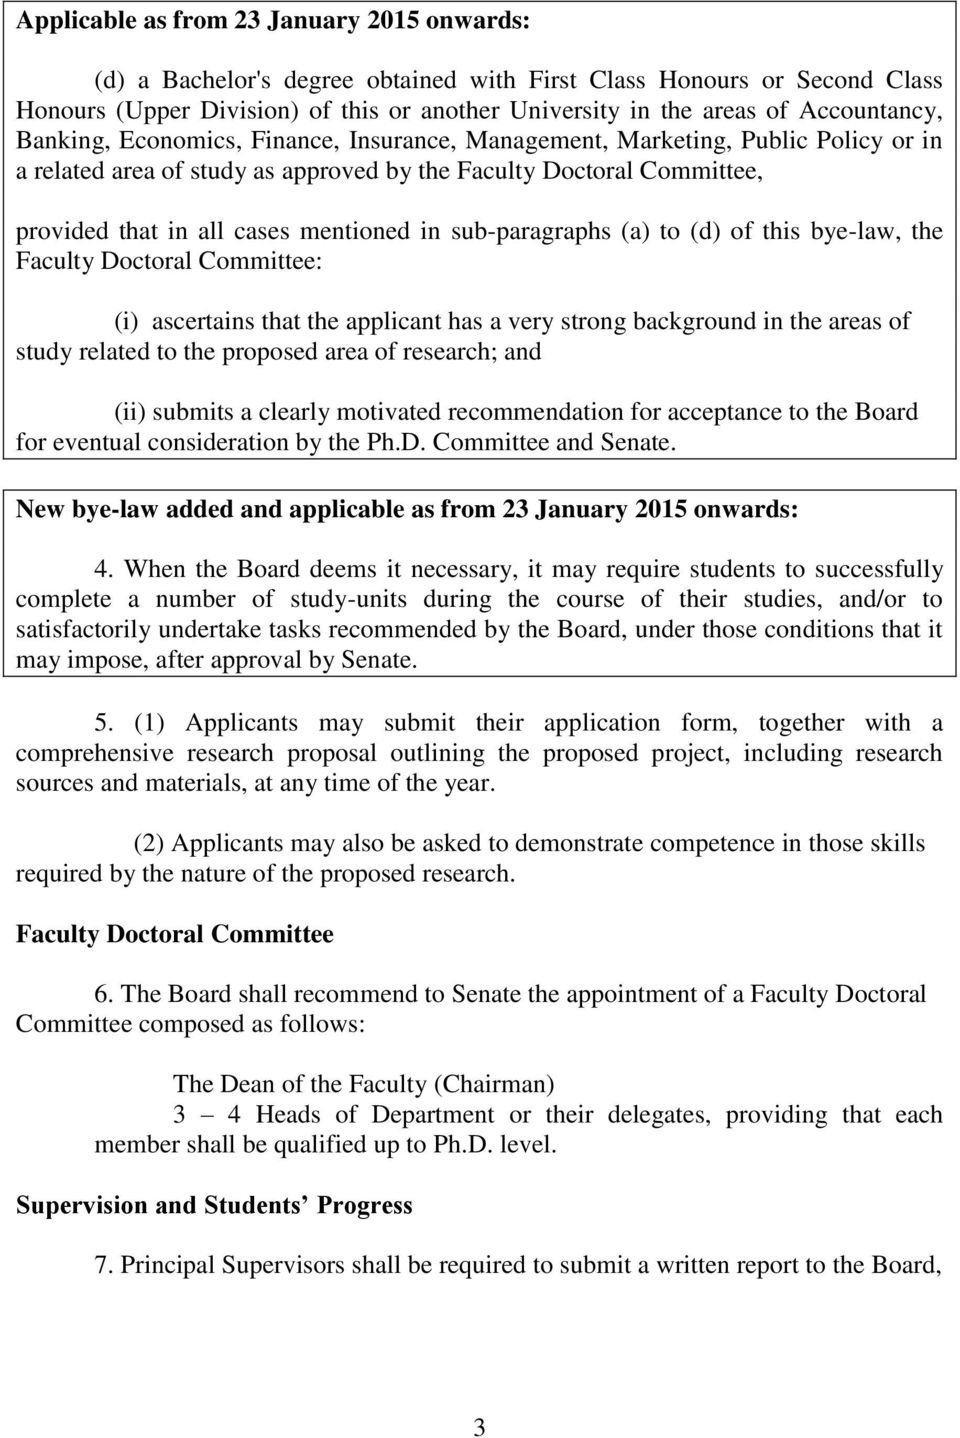 mentioned in sub-paragraphs (a) to (d) of this bye-law, the Faculty Doctoral Committee: (i) ascertains that the applicant has a very strong background in the areas of study related to the proposed